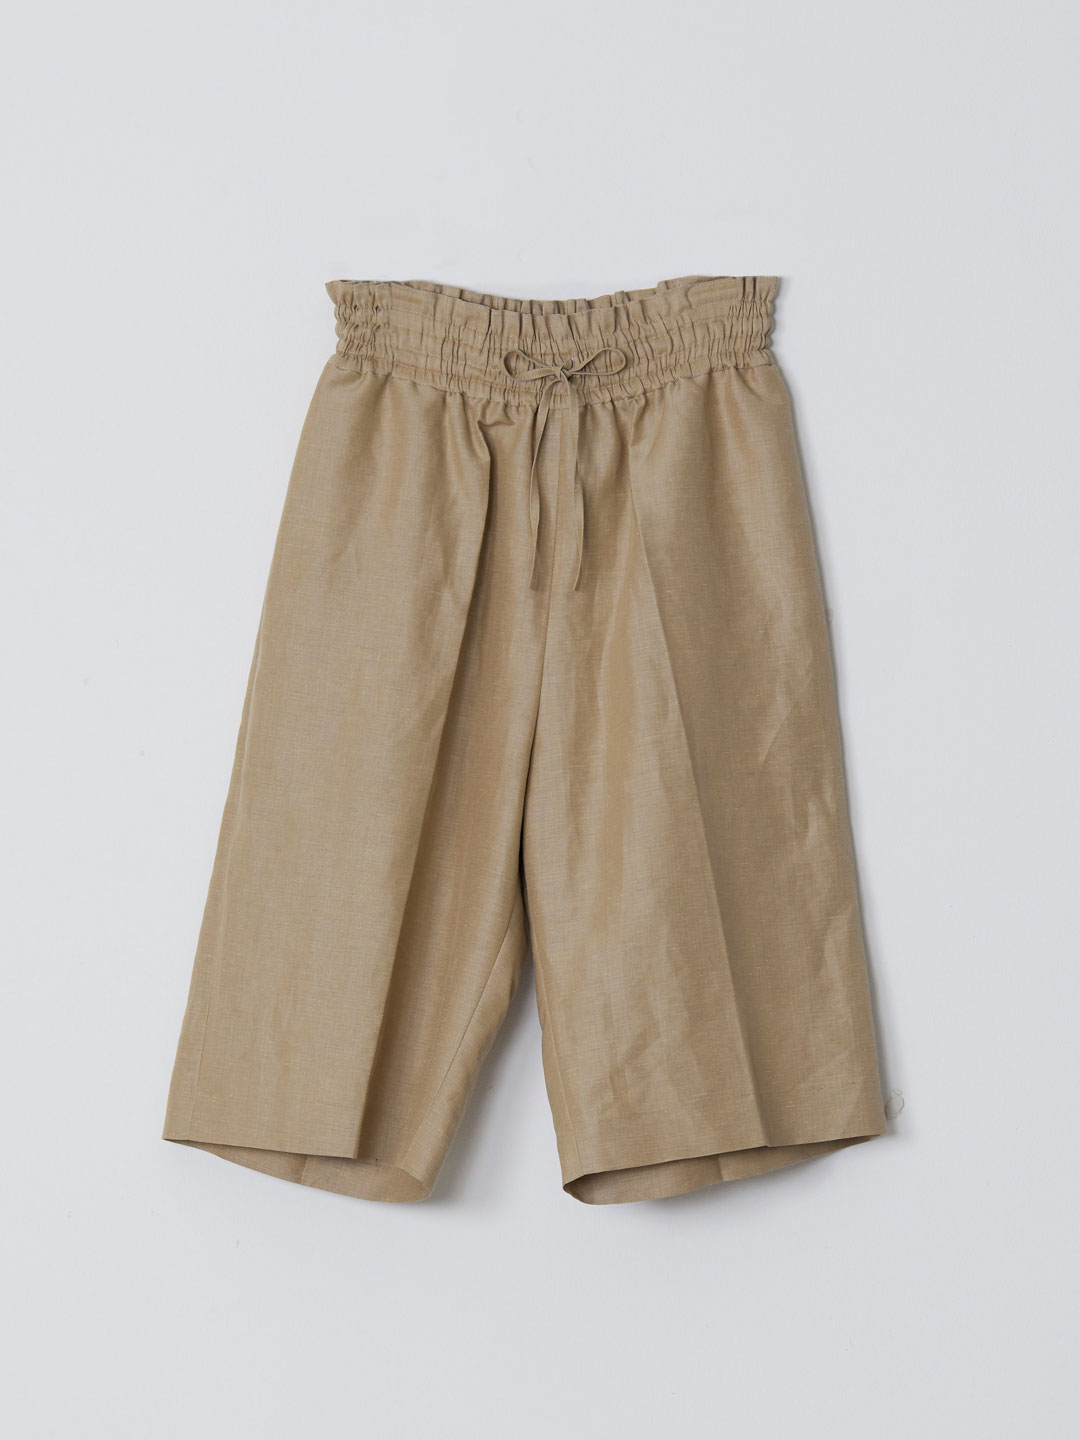 No 0221 Linen Silk Shorts  - Beige